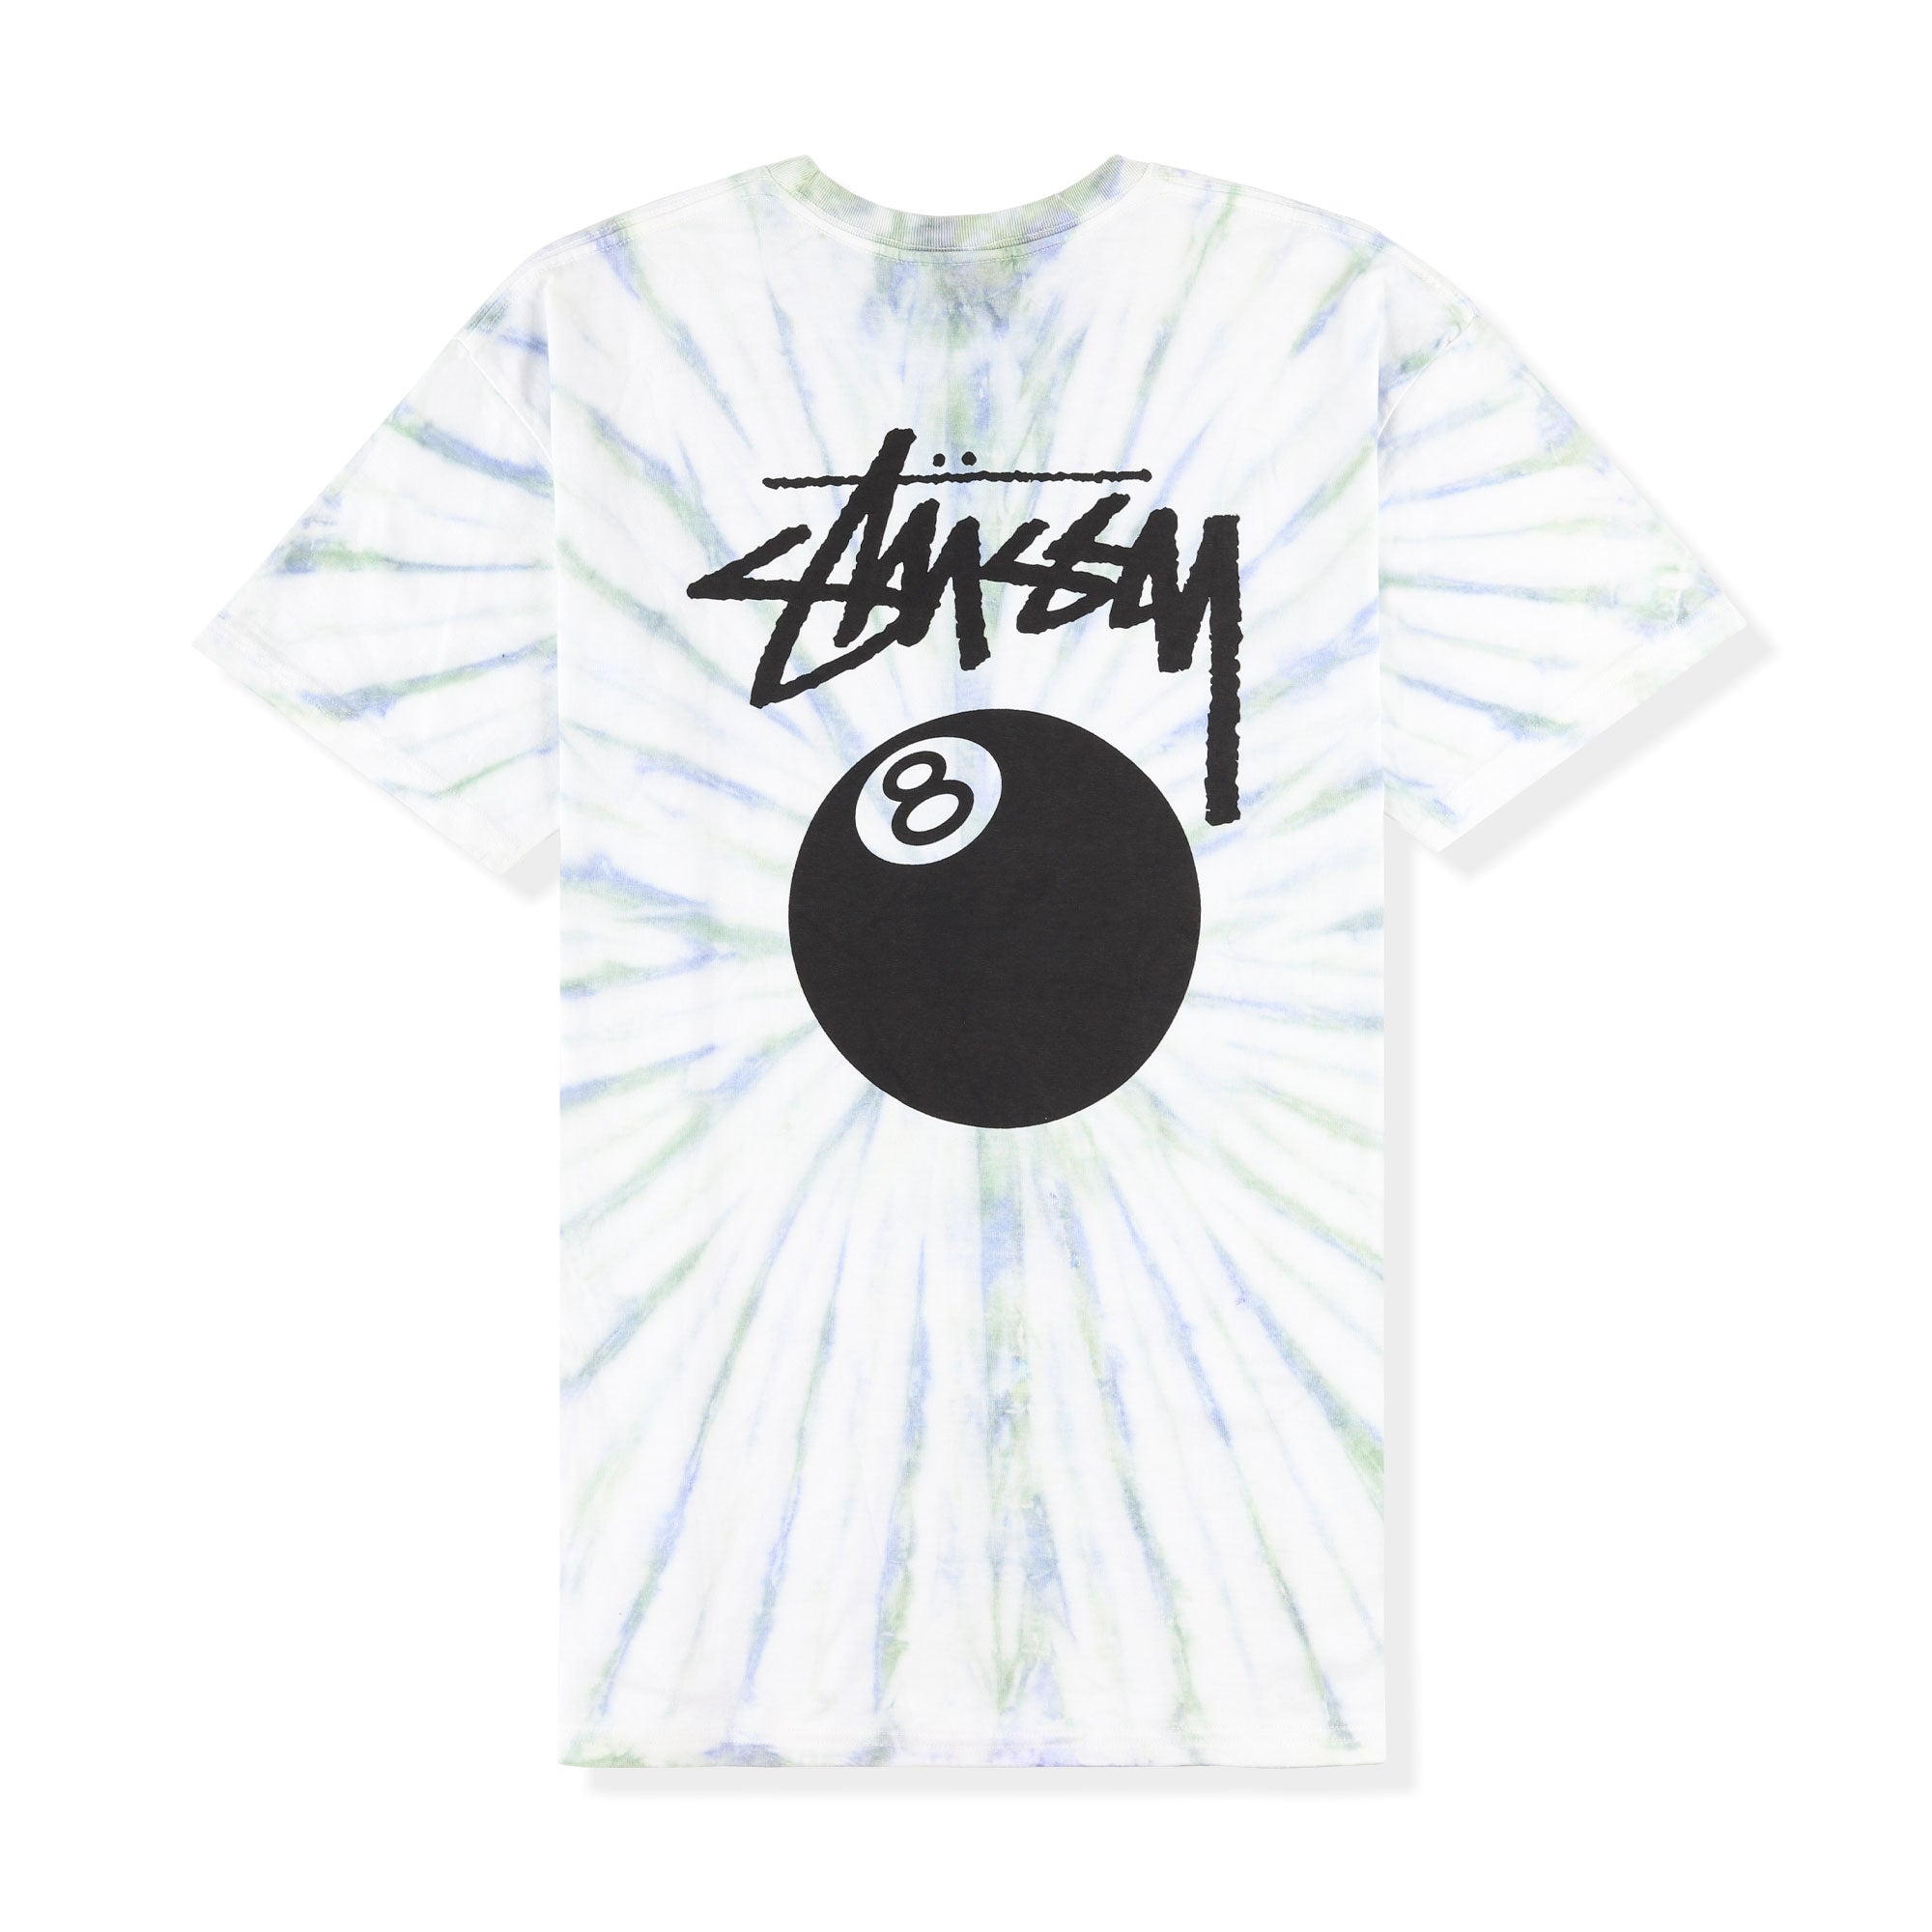 Stussy 8 Ball Tie Dye Tee Product Photo #2